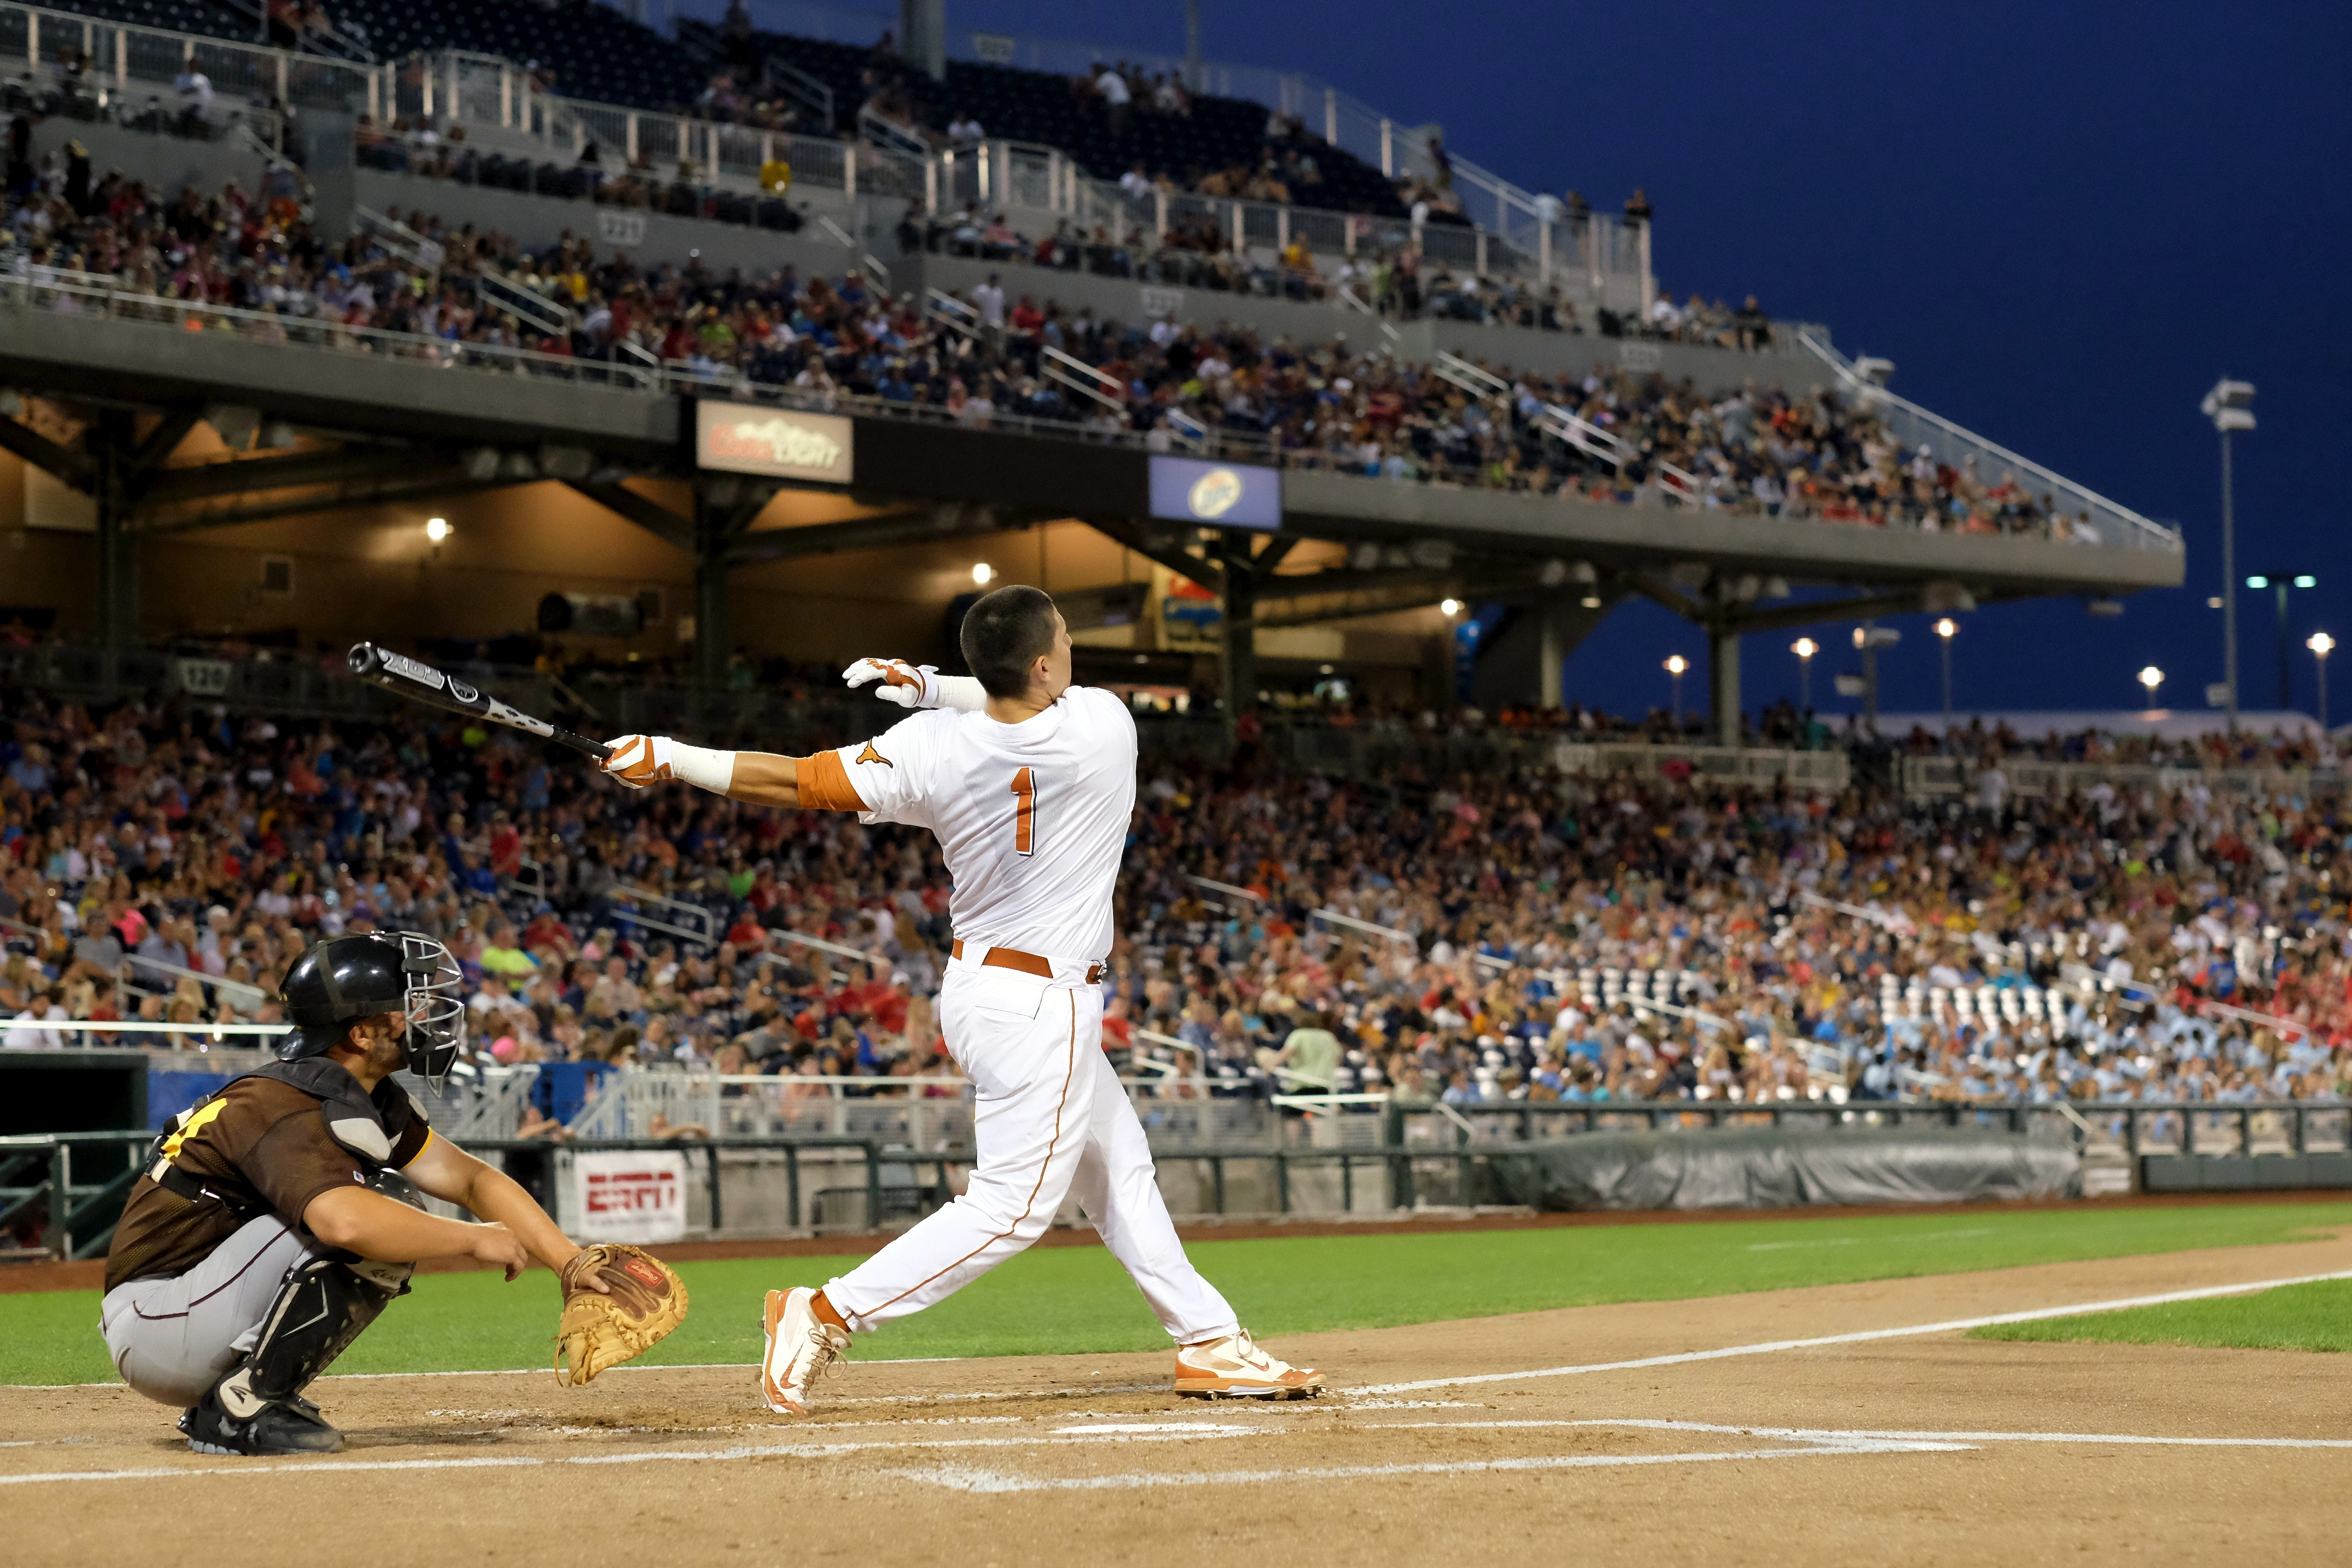 6th Annual TD Ameritrade College Home Run Derby Slated for July 2 ...